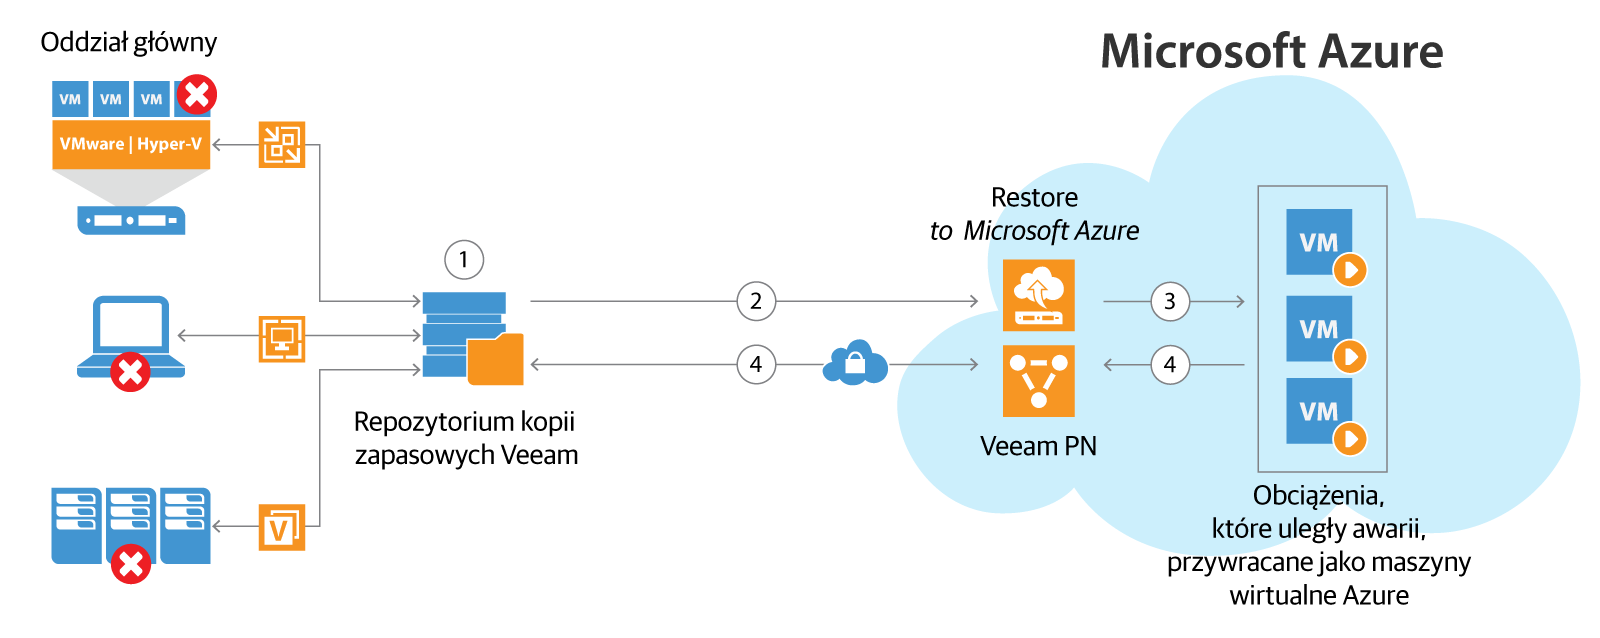 veeam_pn_direct_restore_to_azure_pl.png